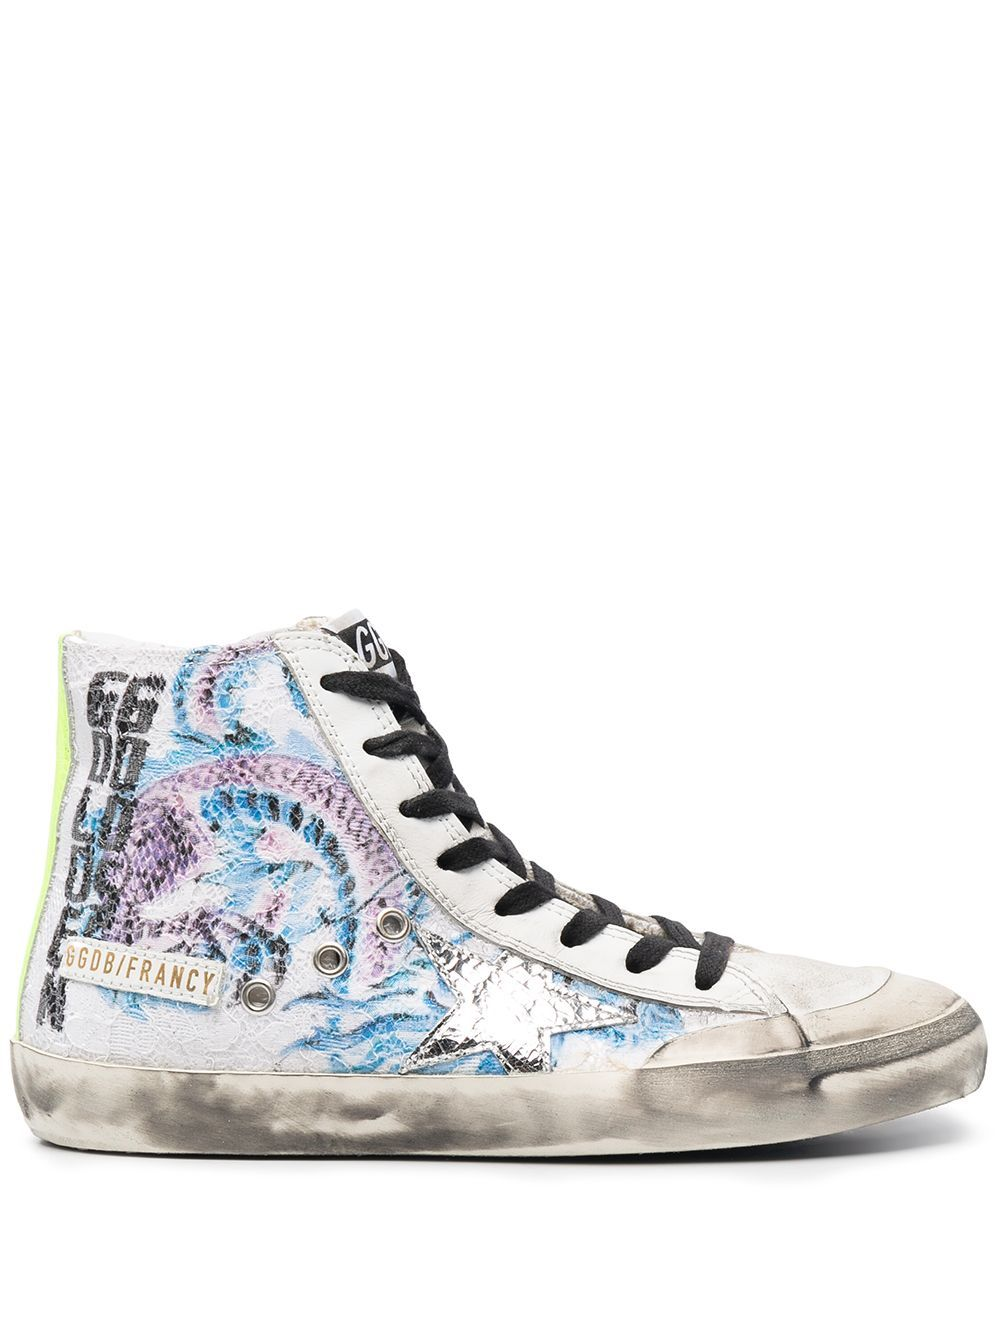 Golden Goose Leathers GOLDEN GOOSE WOMEN'S GWF00114F00026880271 WHITE LEATHER HI TOP SNEAKERS